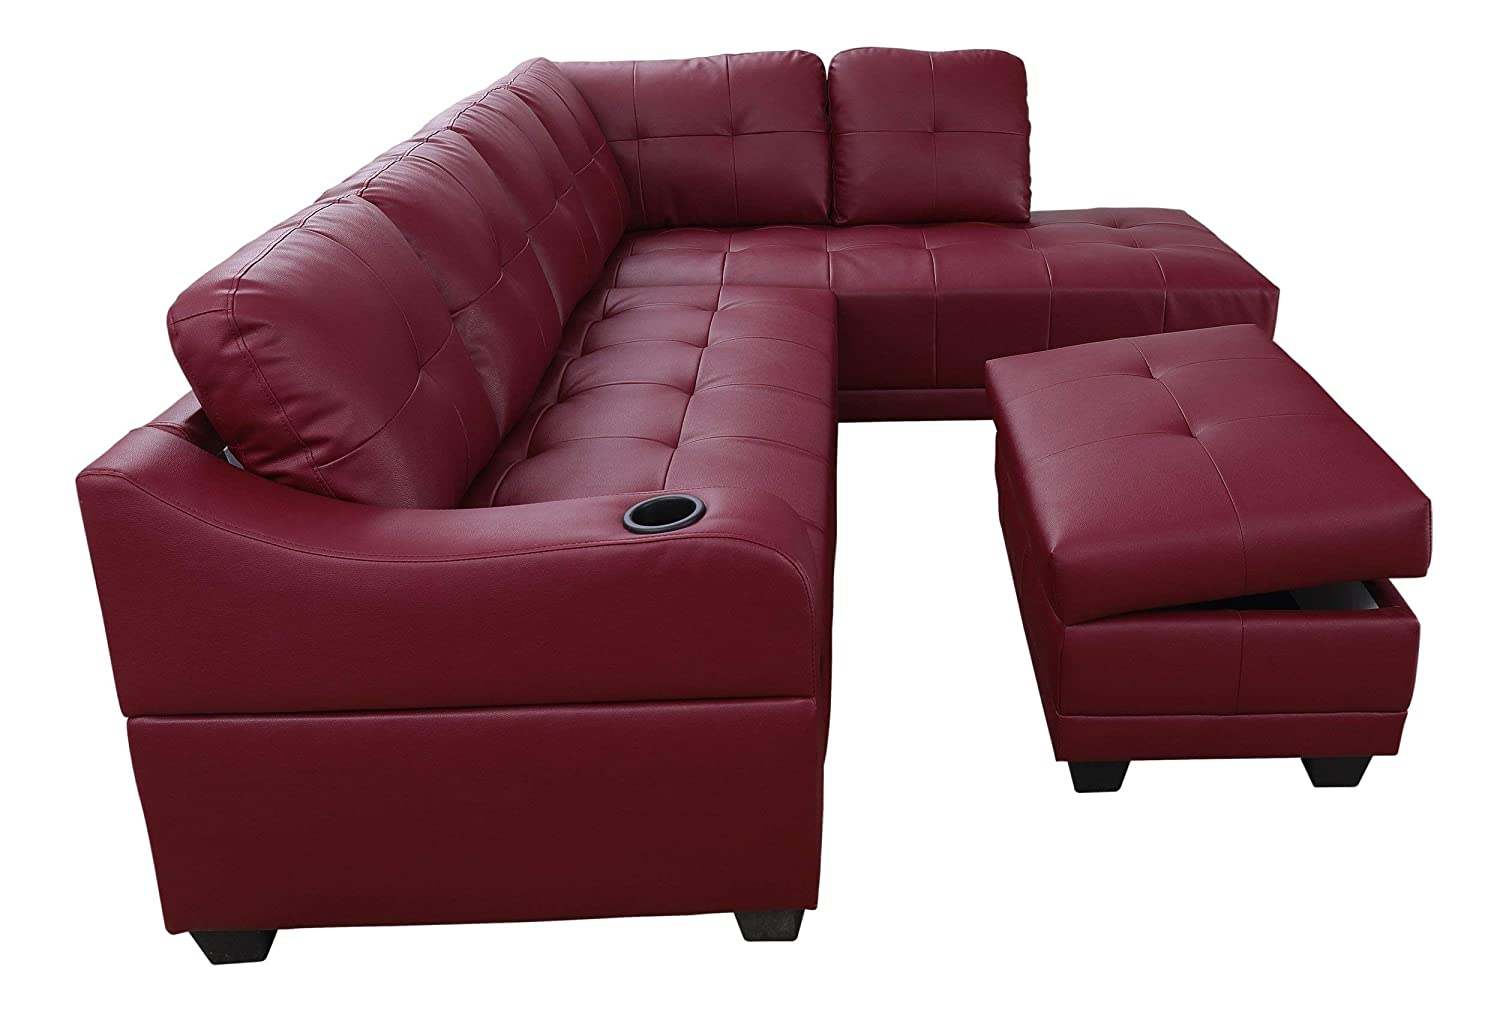 new style 179b5 70411 Beverly Fine Funiture CT7303B Sectional Sofa Set, Burgundy